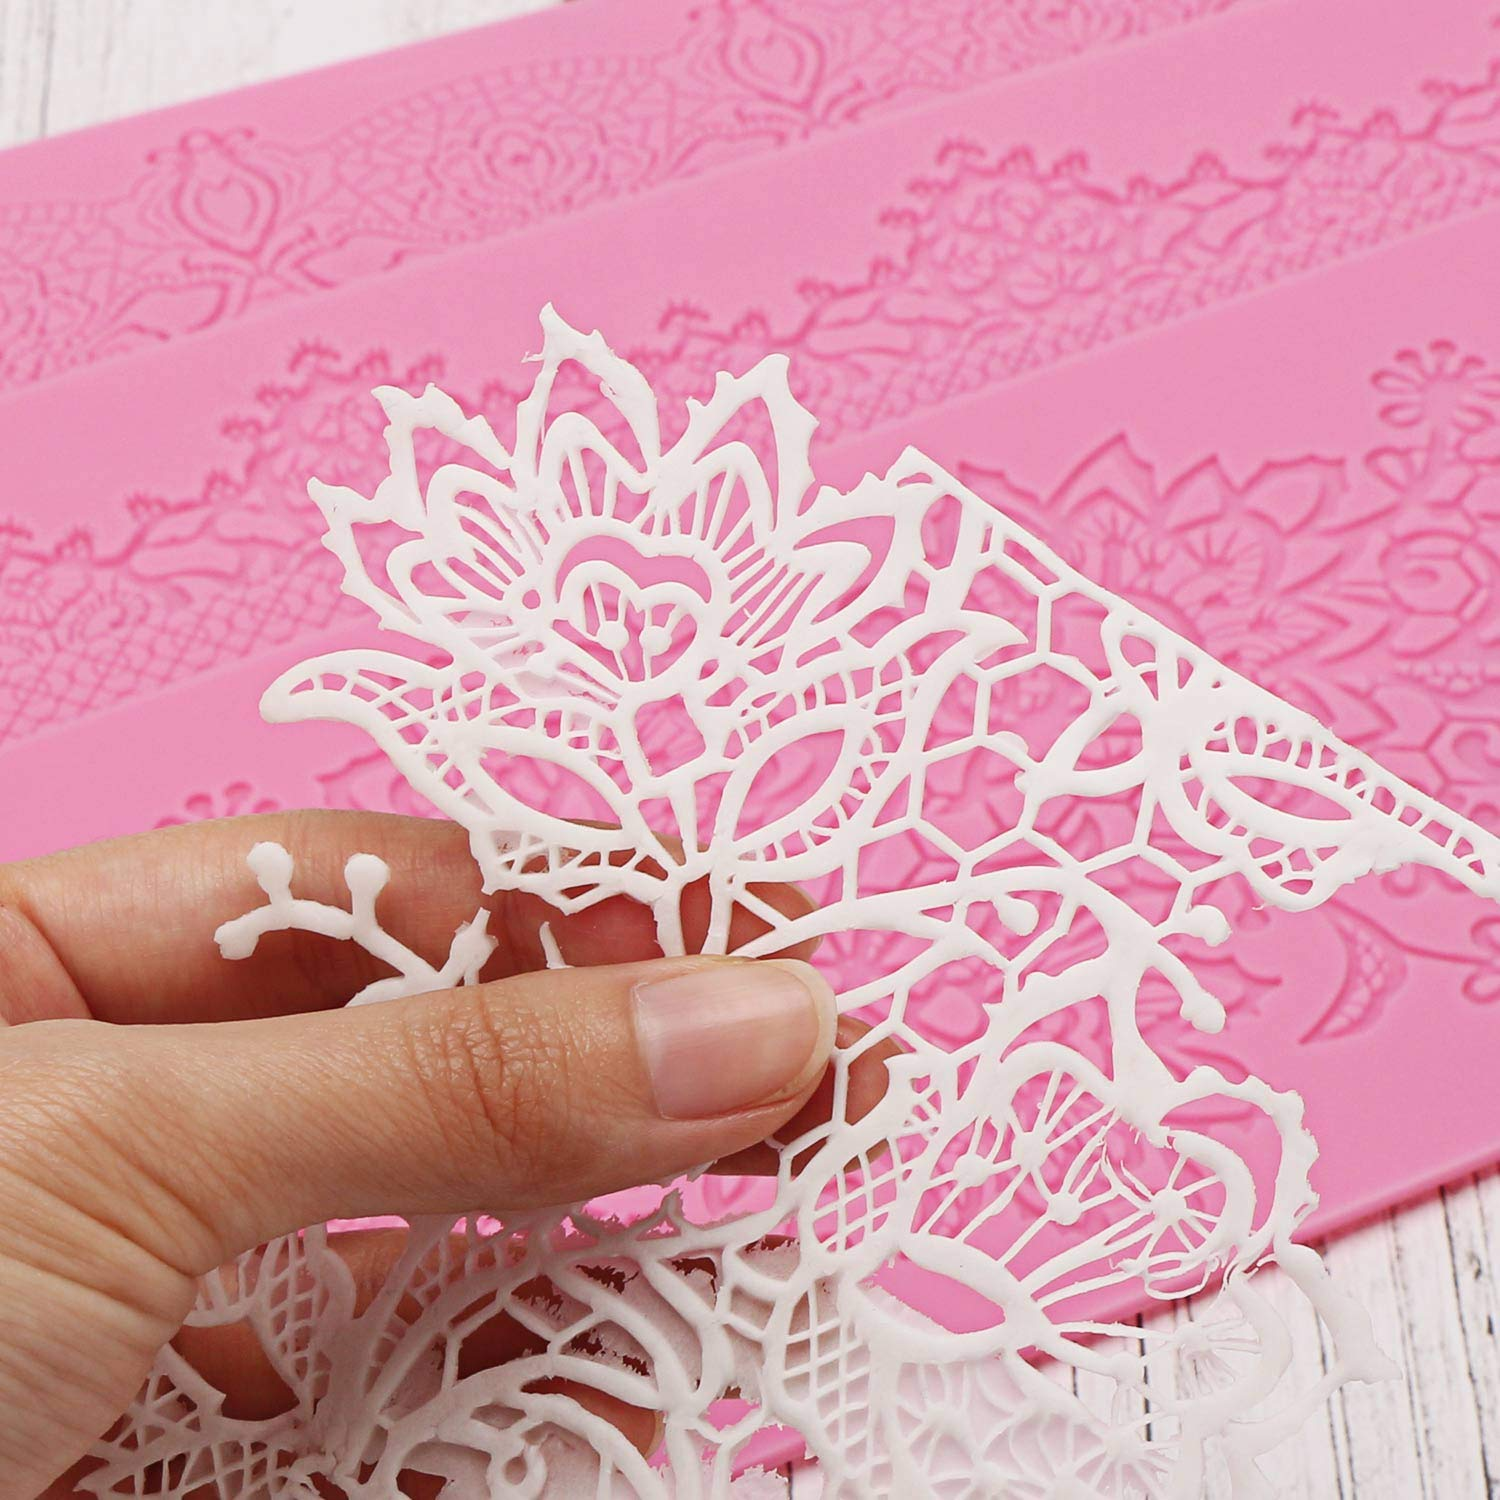 Silicone Lace Molds, Beasea 5pcs Fondant Cake Decorating Tools Lace Decoration Mat Flower Pattern Molds Sugar Craft Tools - Pink by Beasea (Image #6)